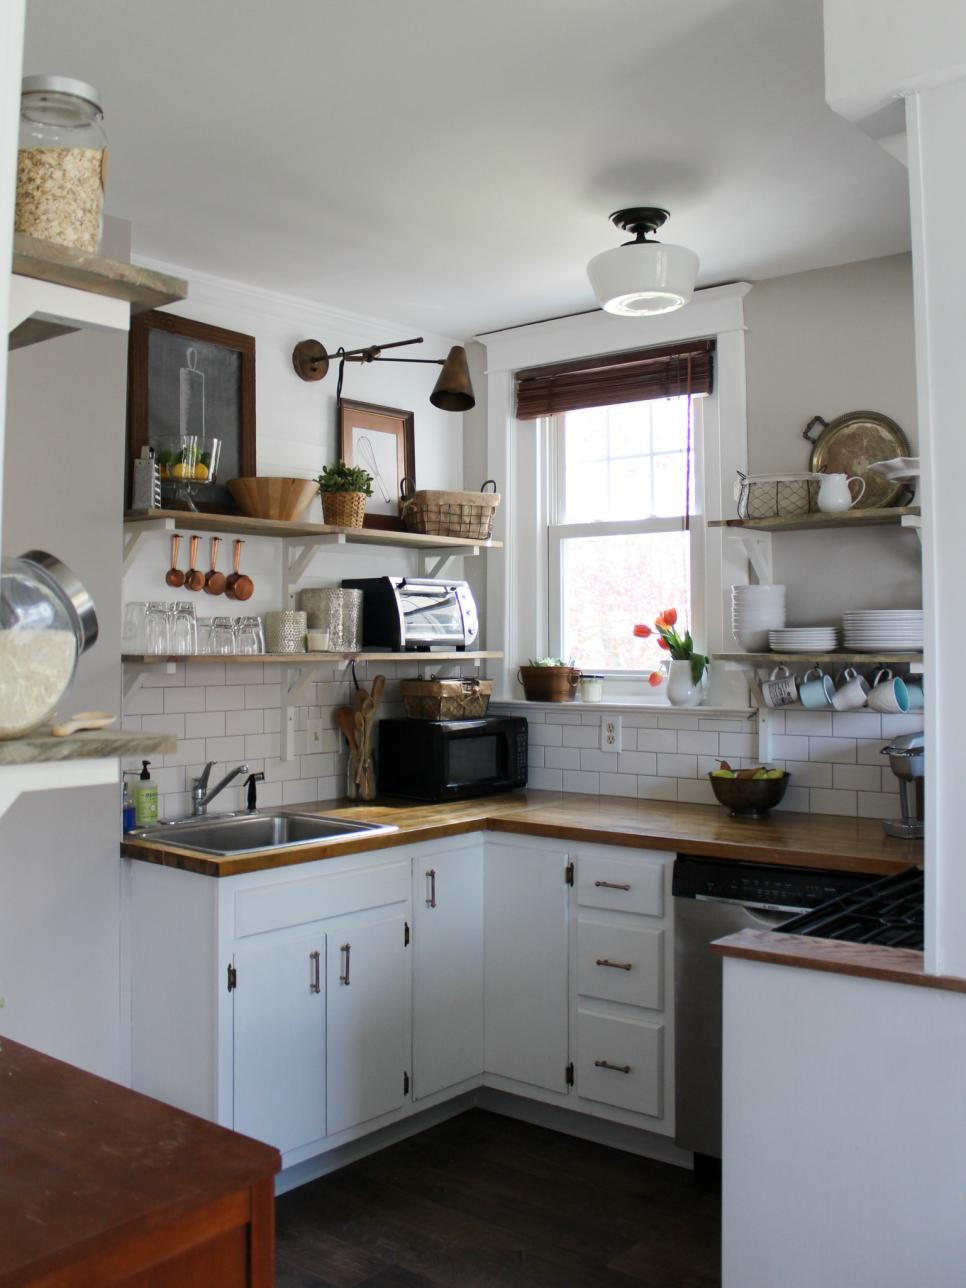 Before and after kitchen remodels on a budget hgtv Remodeling a small old house